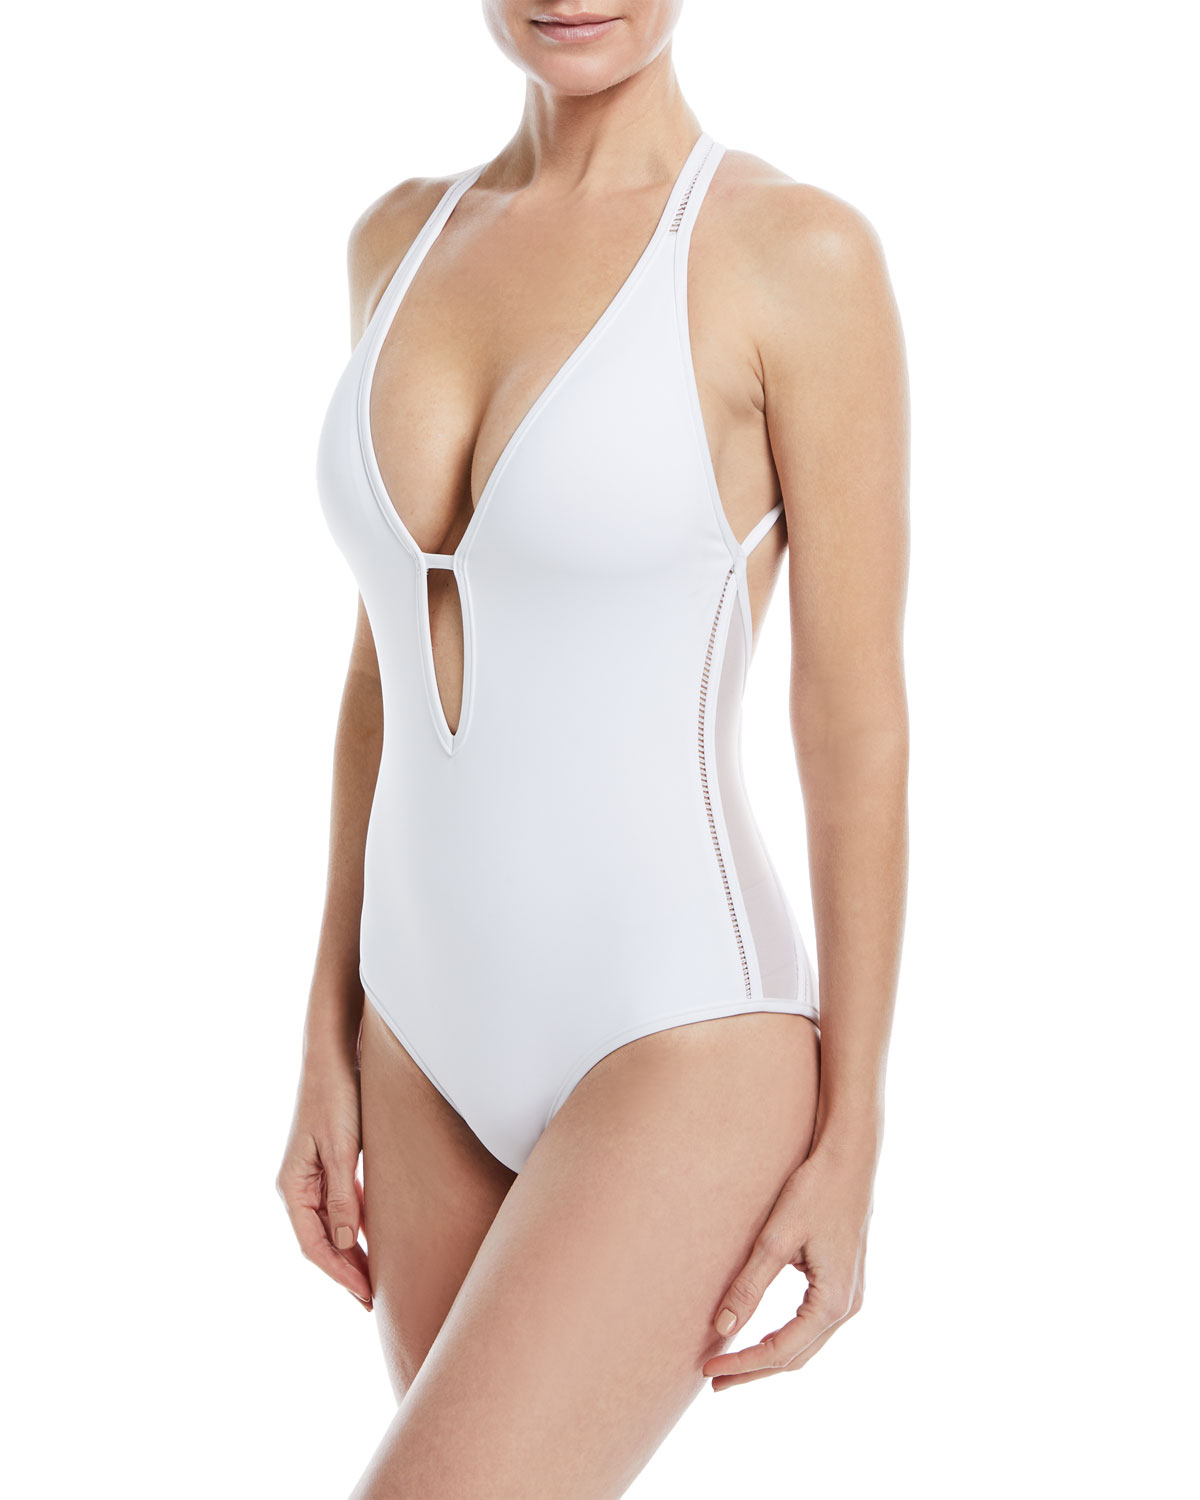 Aspire Plunge Strappy One-Piece Swimsuit